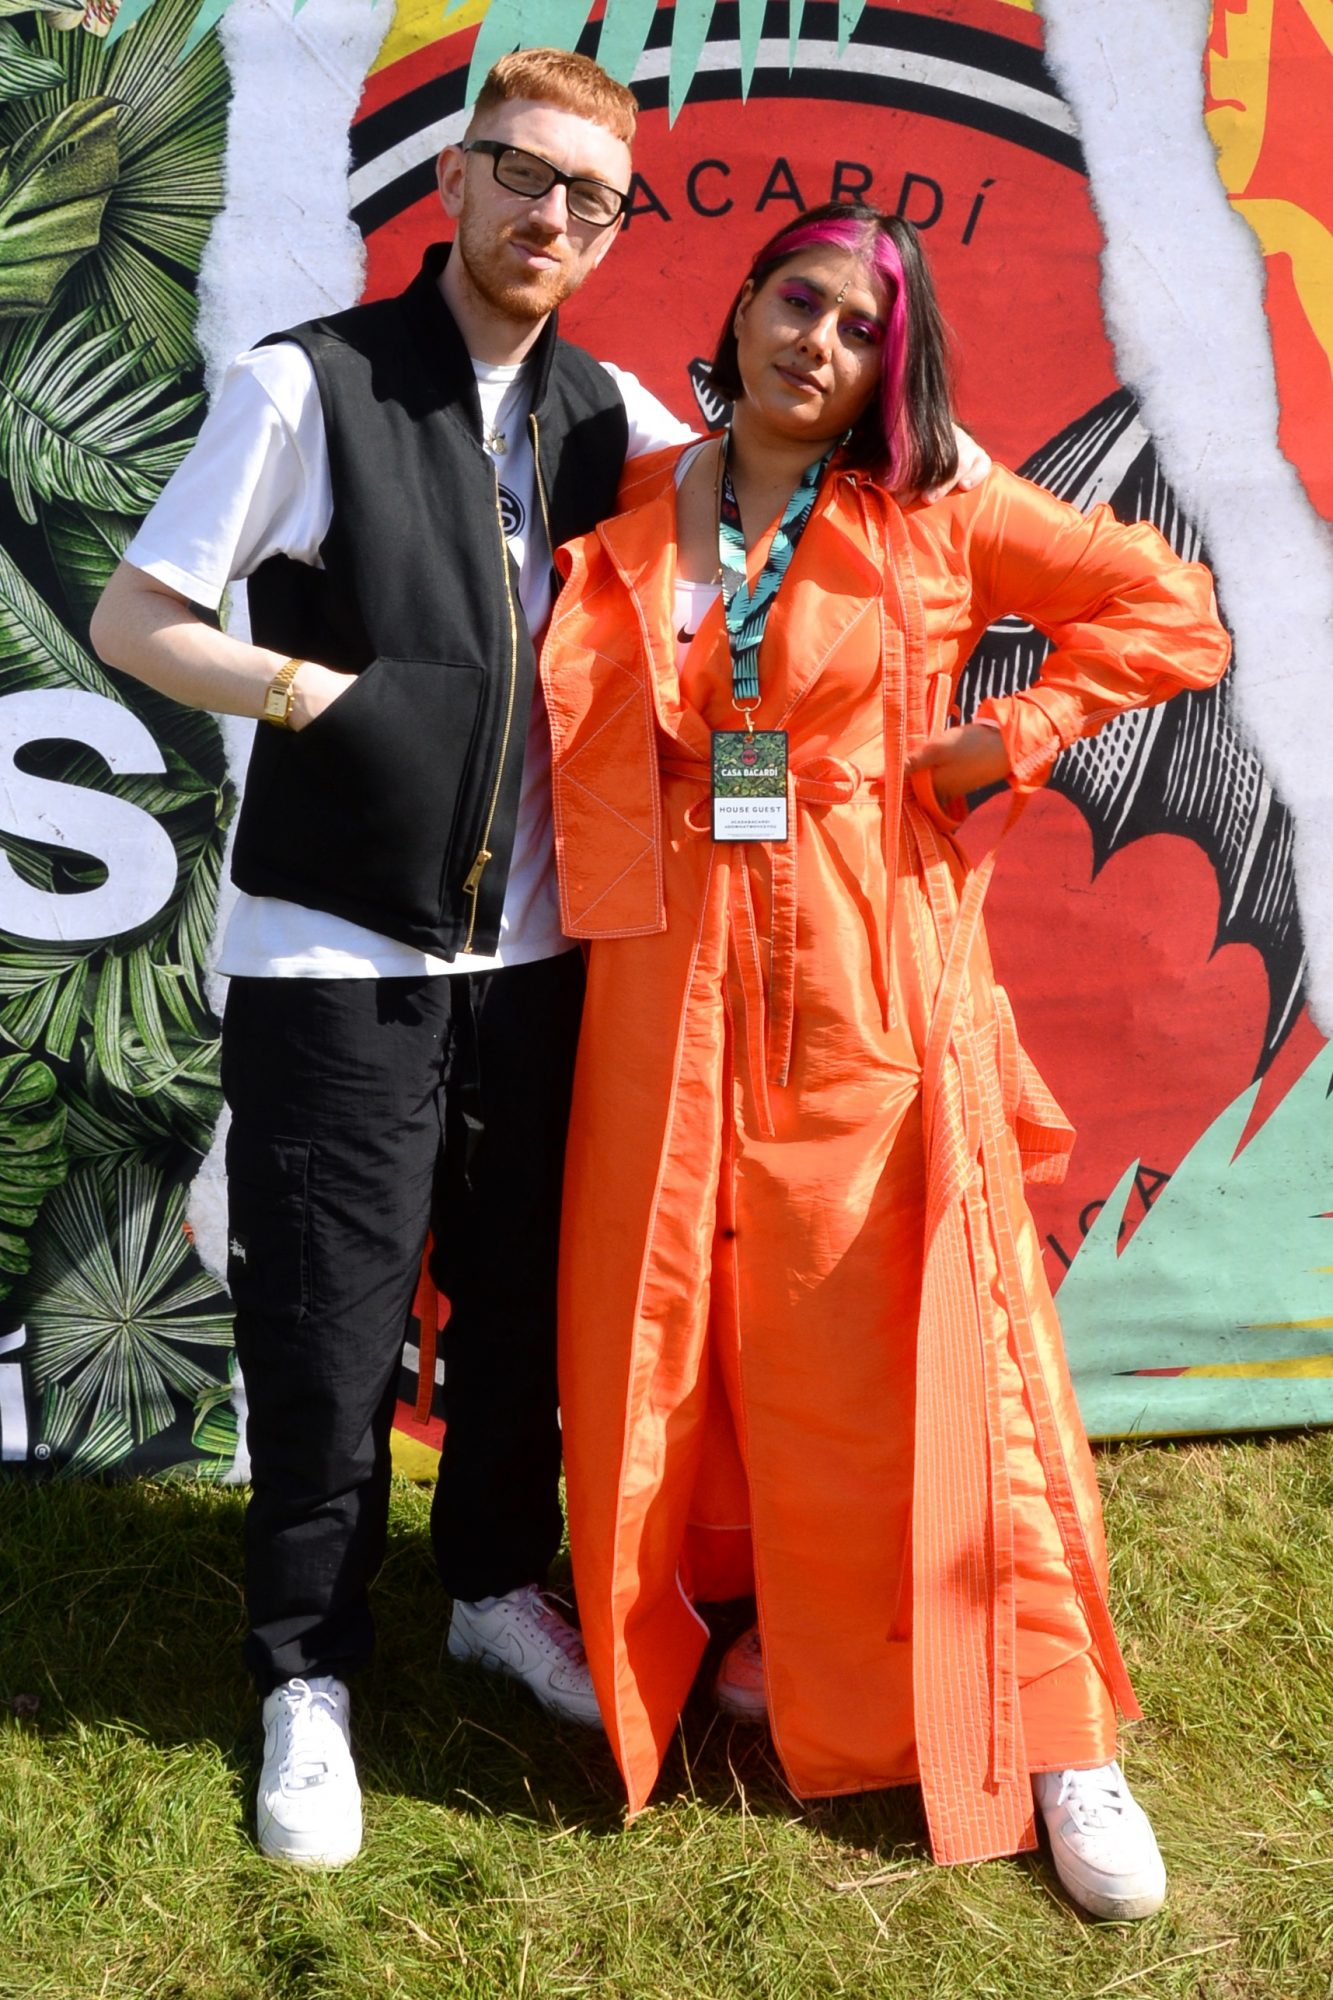 31st August 2019. Tara Stewart and Mango pictured at Casa Bacardi on day 2 of Electric Picnic. Photo: Justin Farrelly.